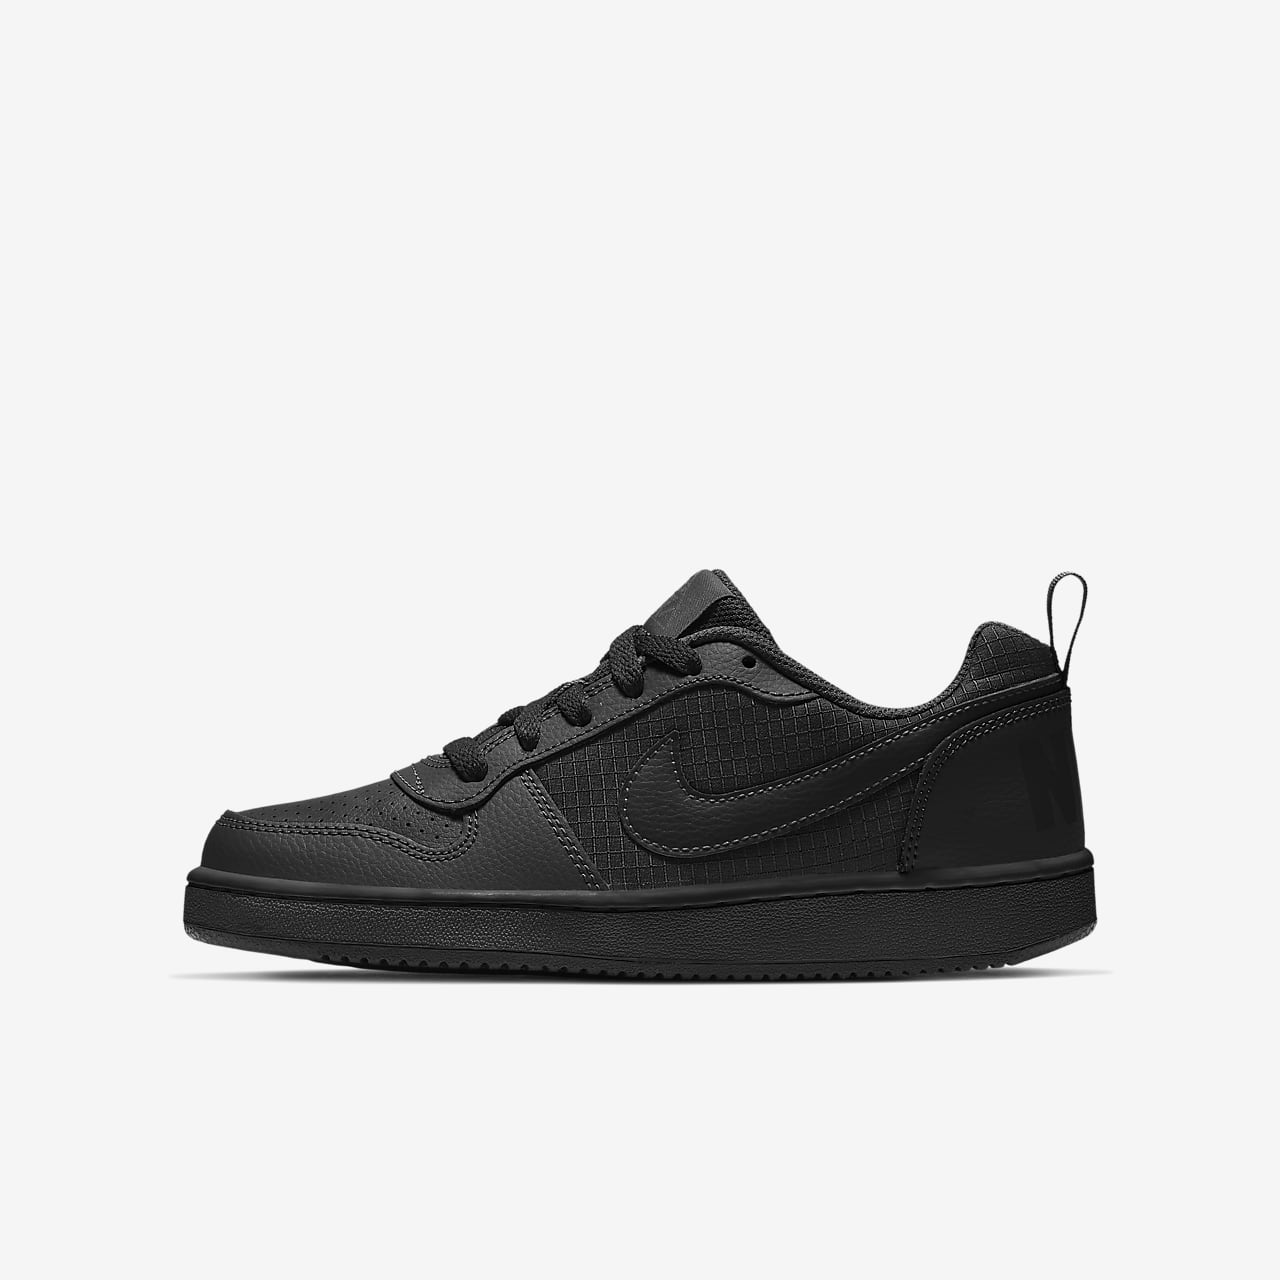 Calzado para niños talla grande Nike Court Borough Low c88c96e52bb